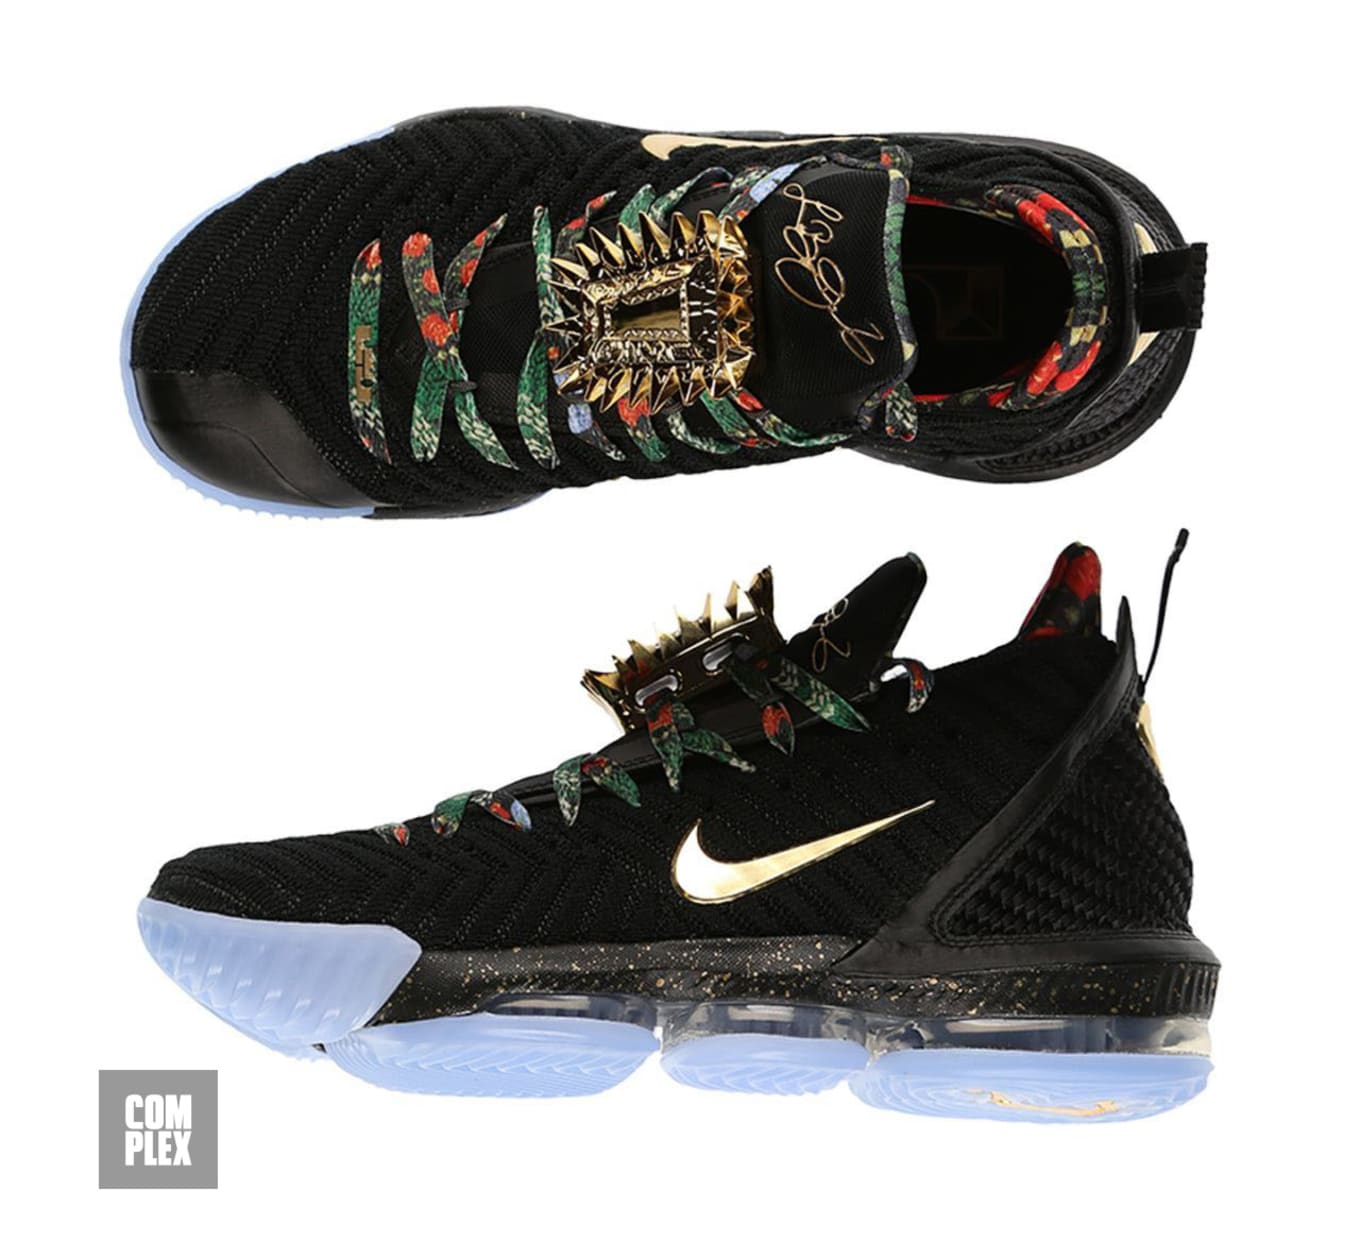 online retailer eb726 9e25c Nike LeBron 16 KC 'Watch the Throne' Black/Metallic Gold ...